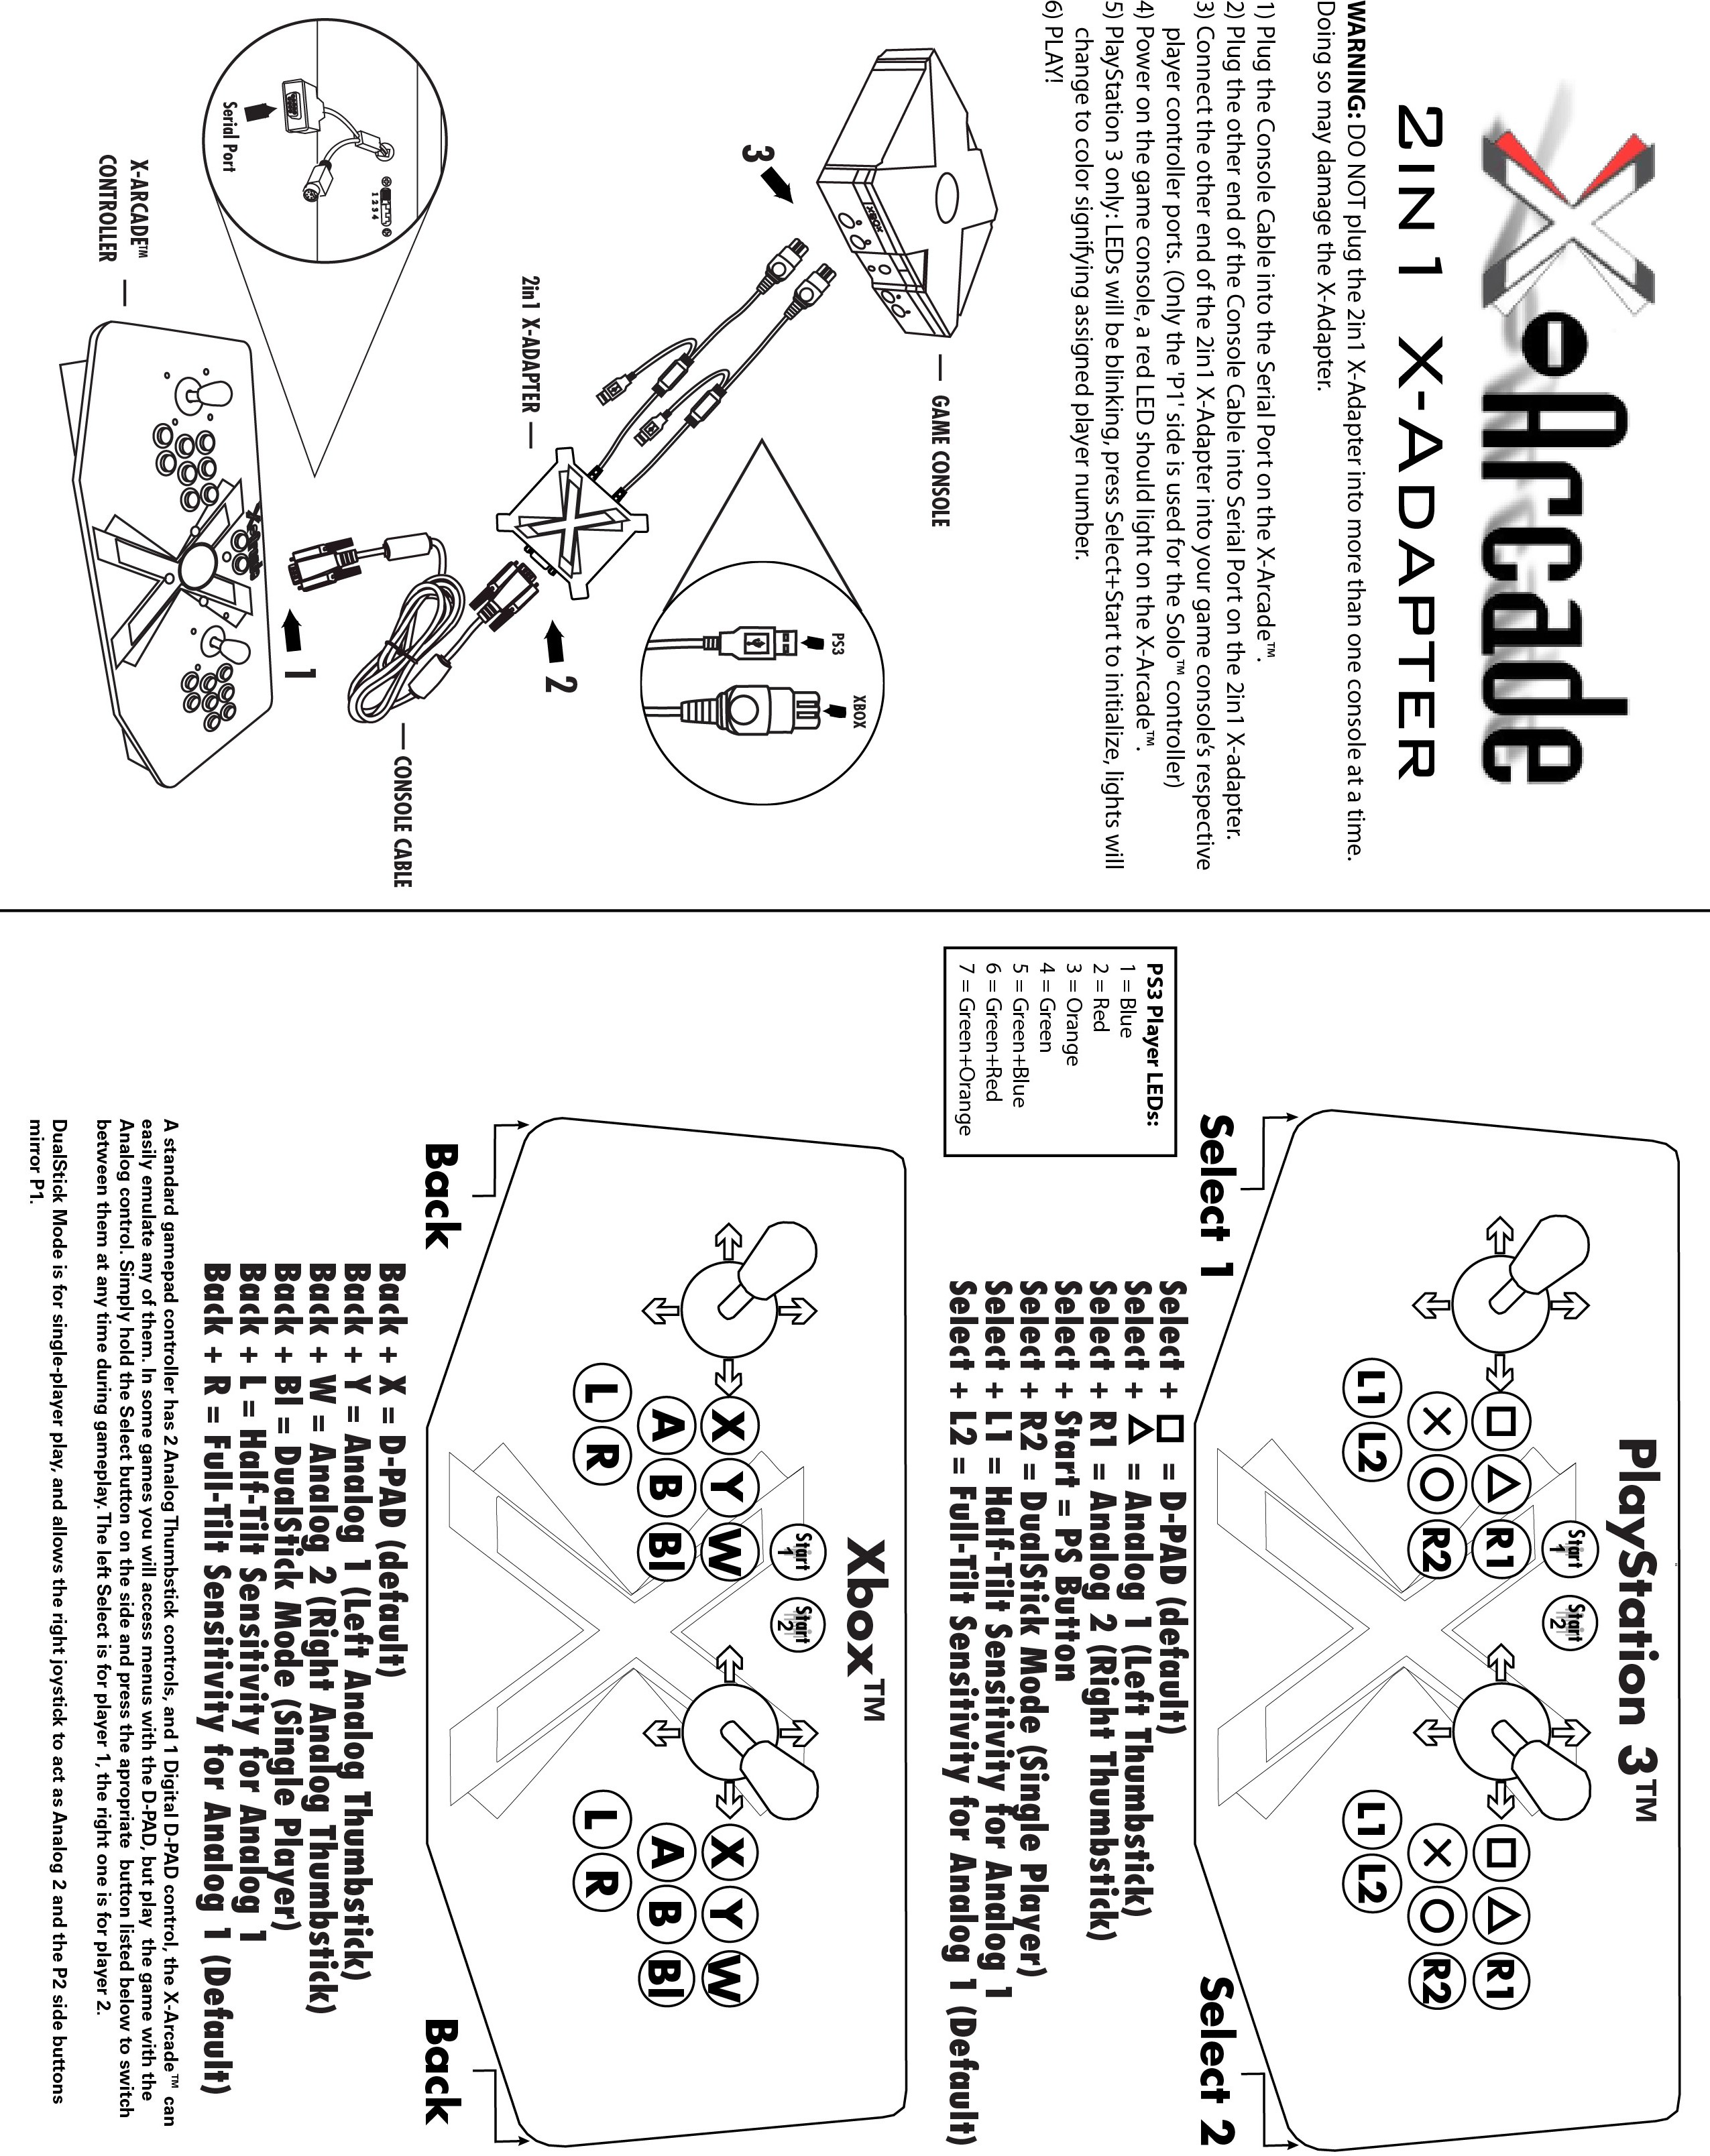 Ps1 Joystick Wiring Diagram Library Schematic